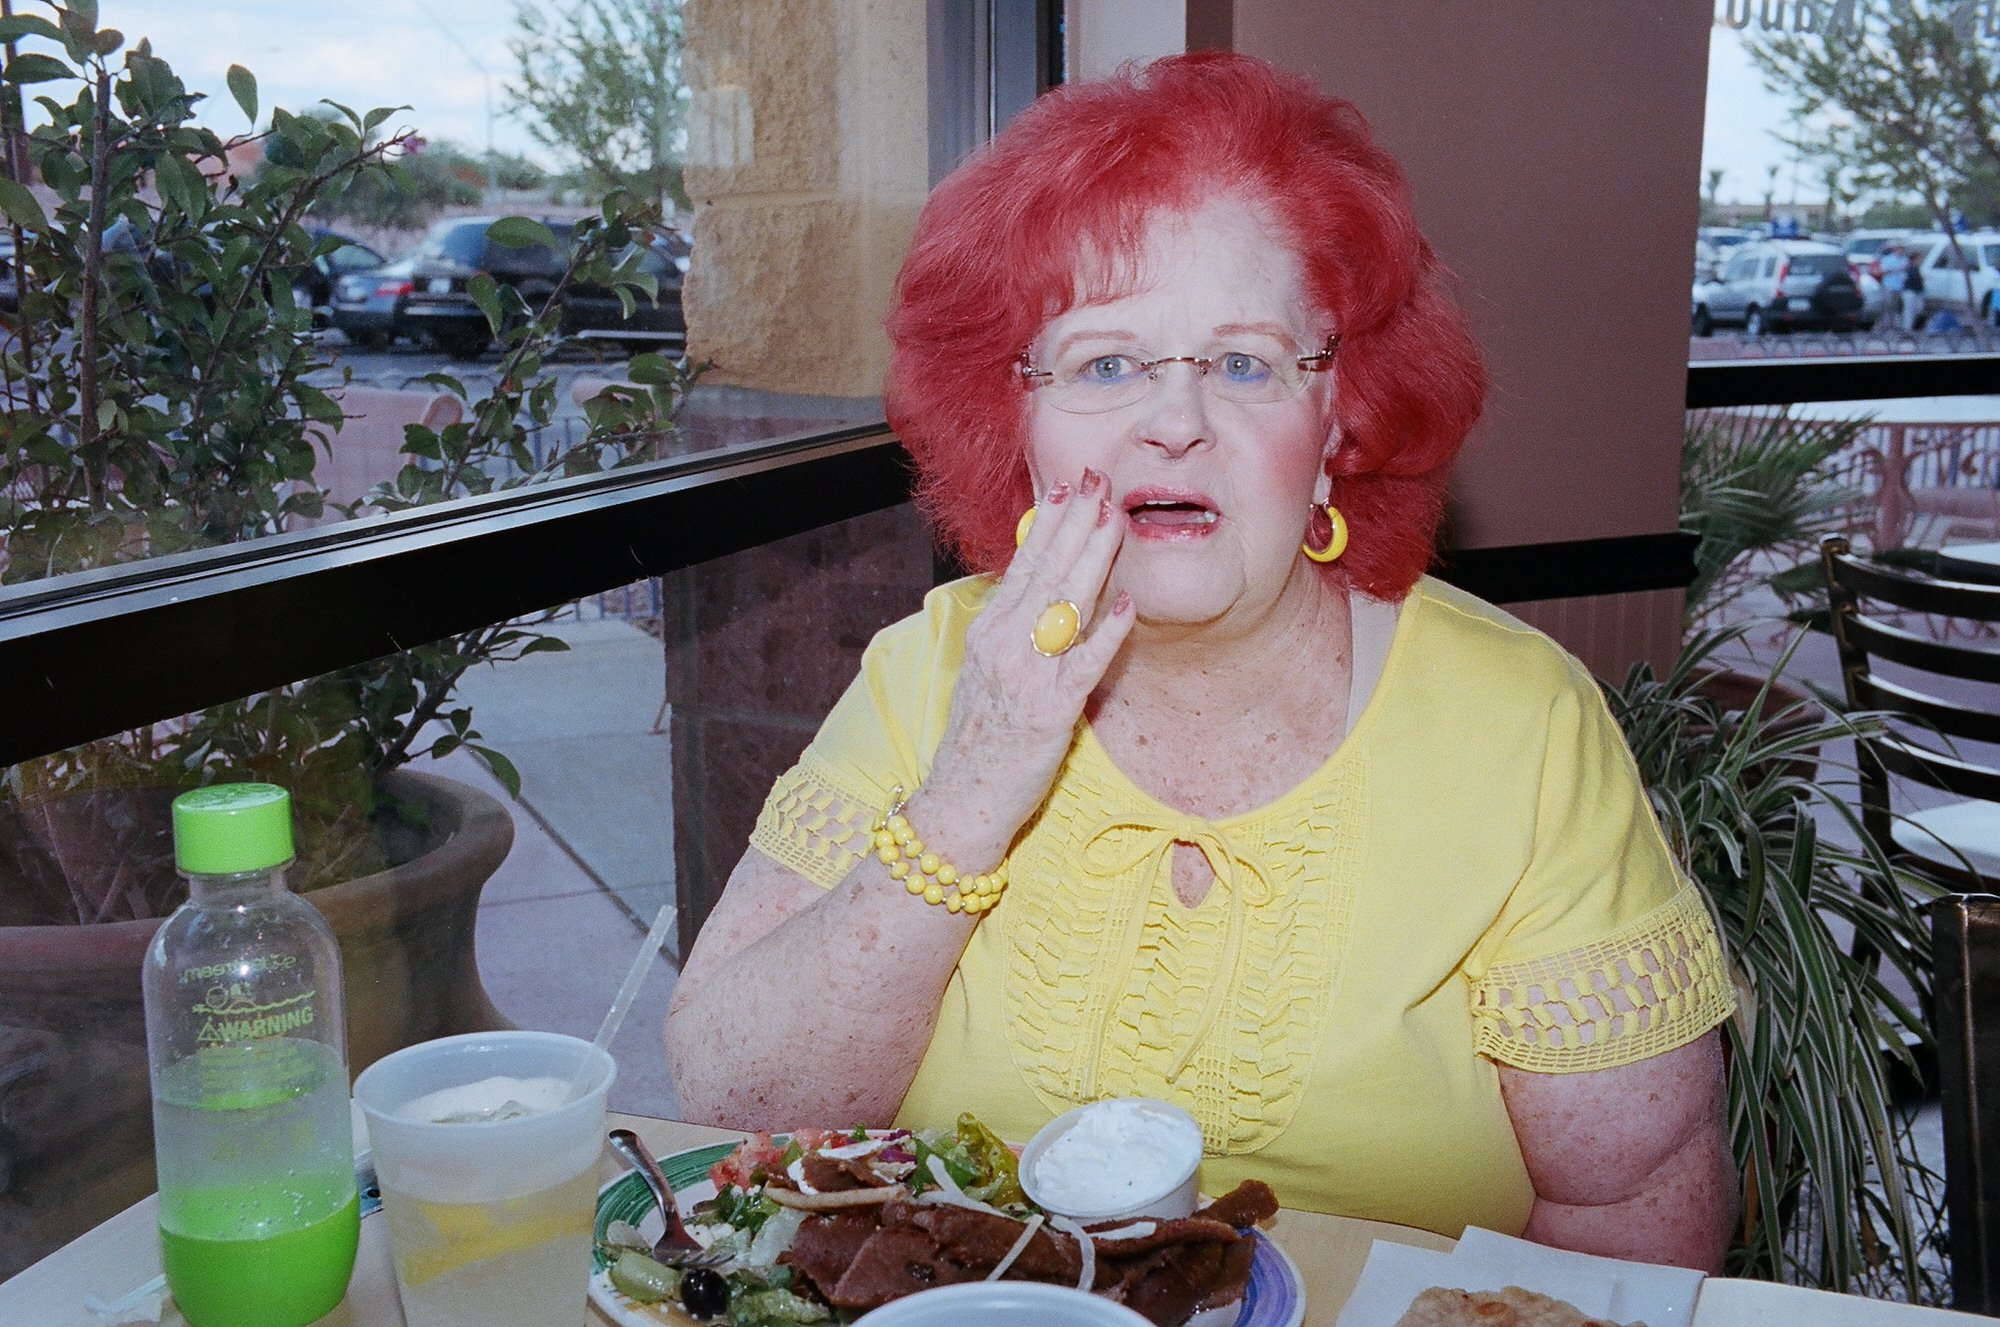 tucson red hair woman yellow shirt